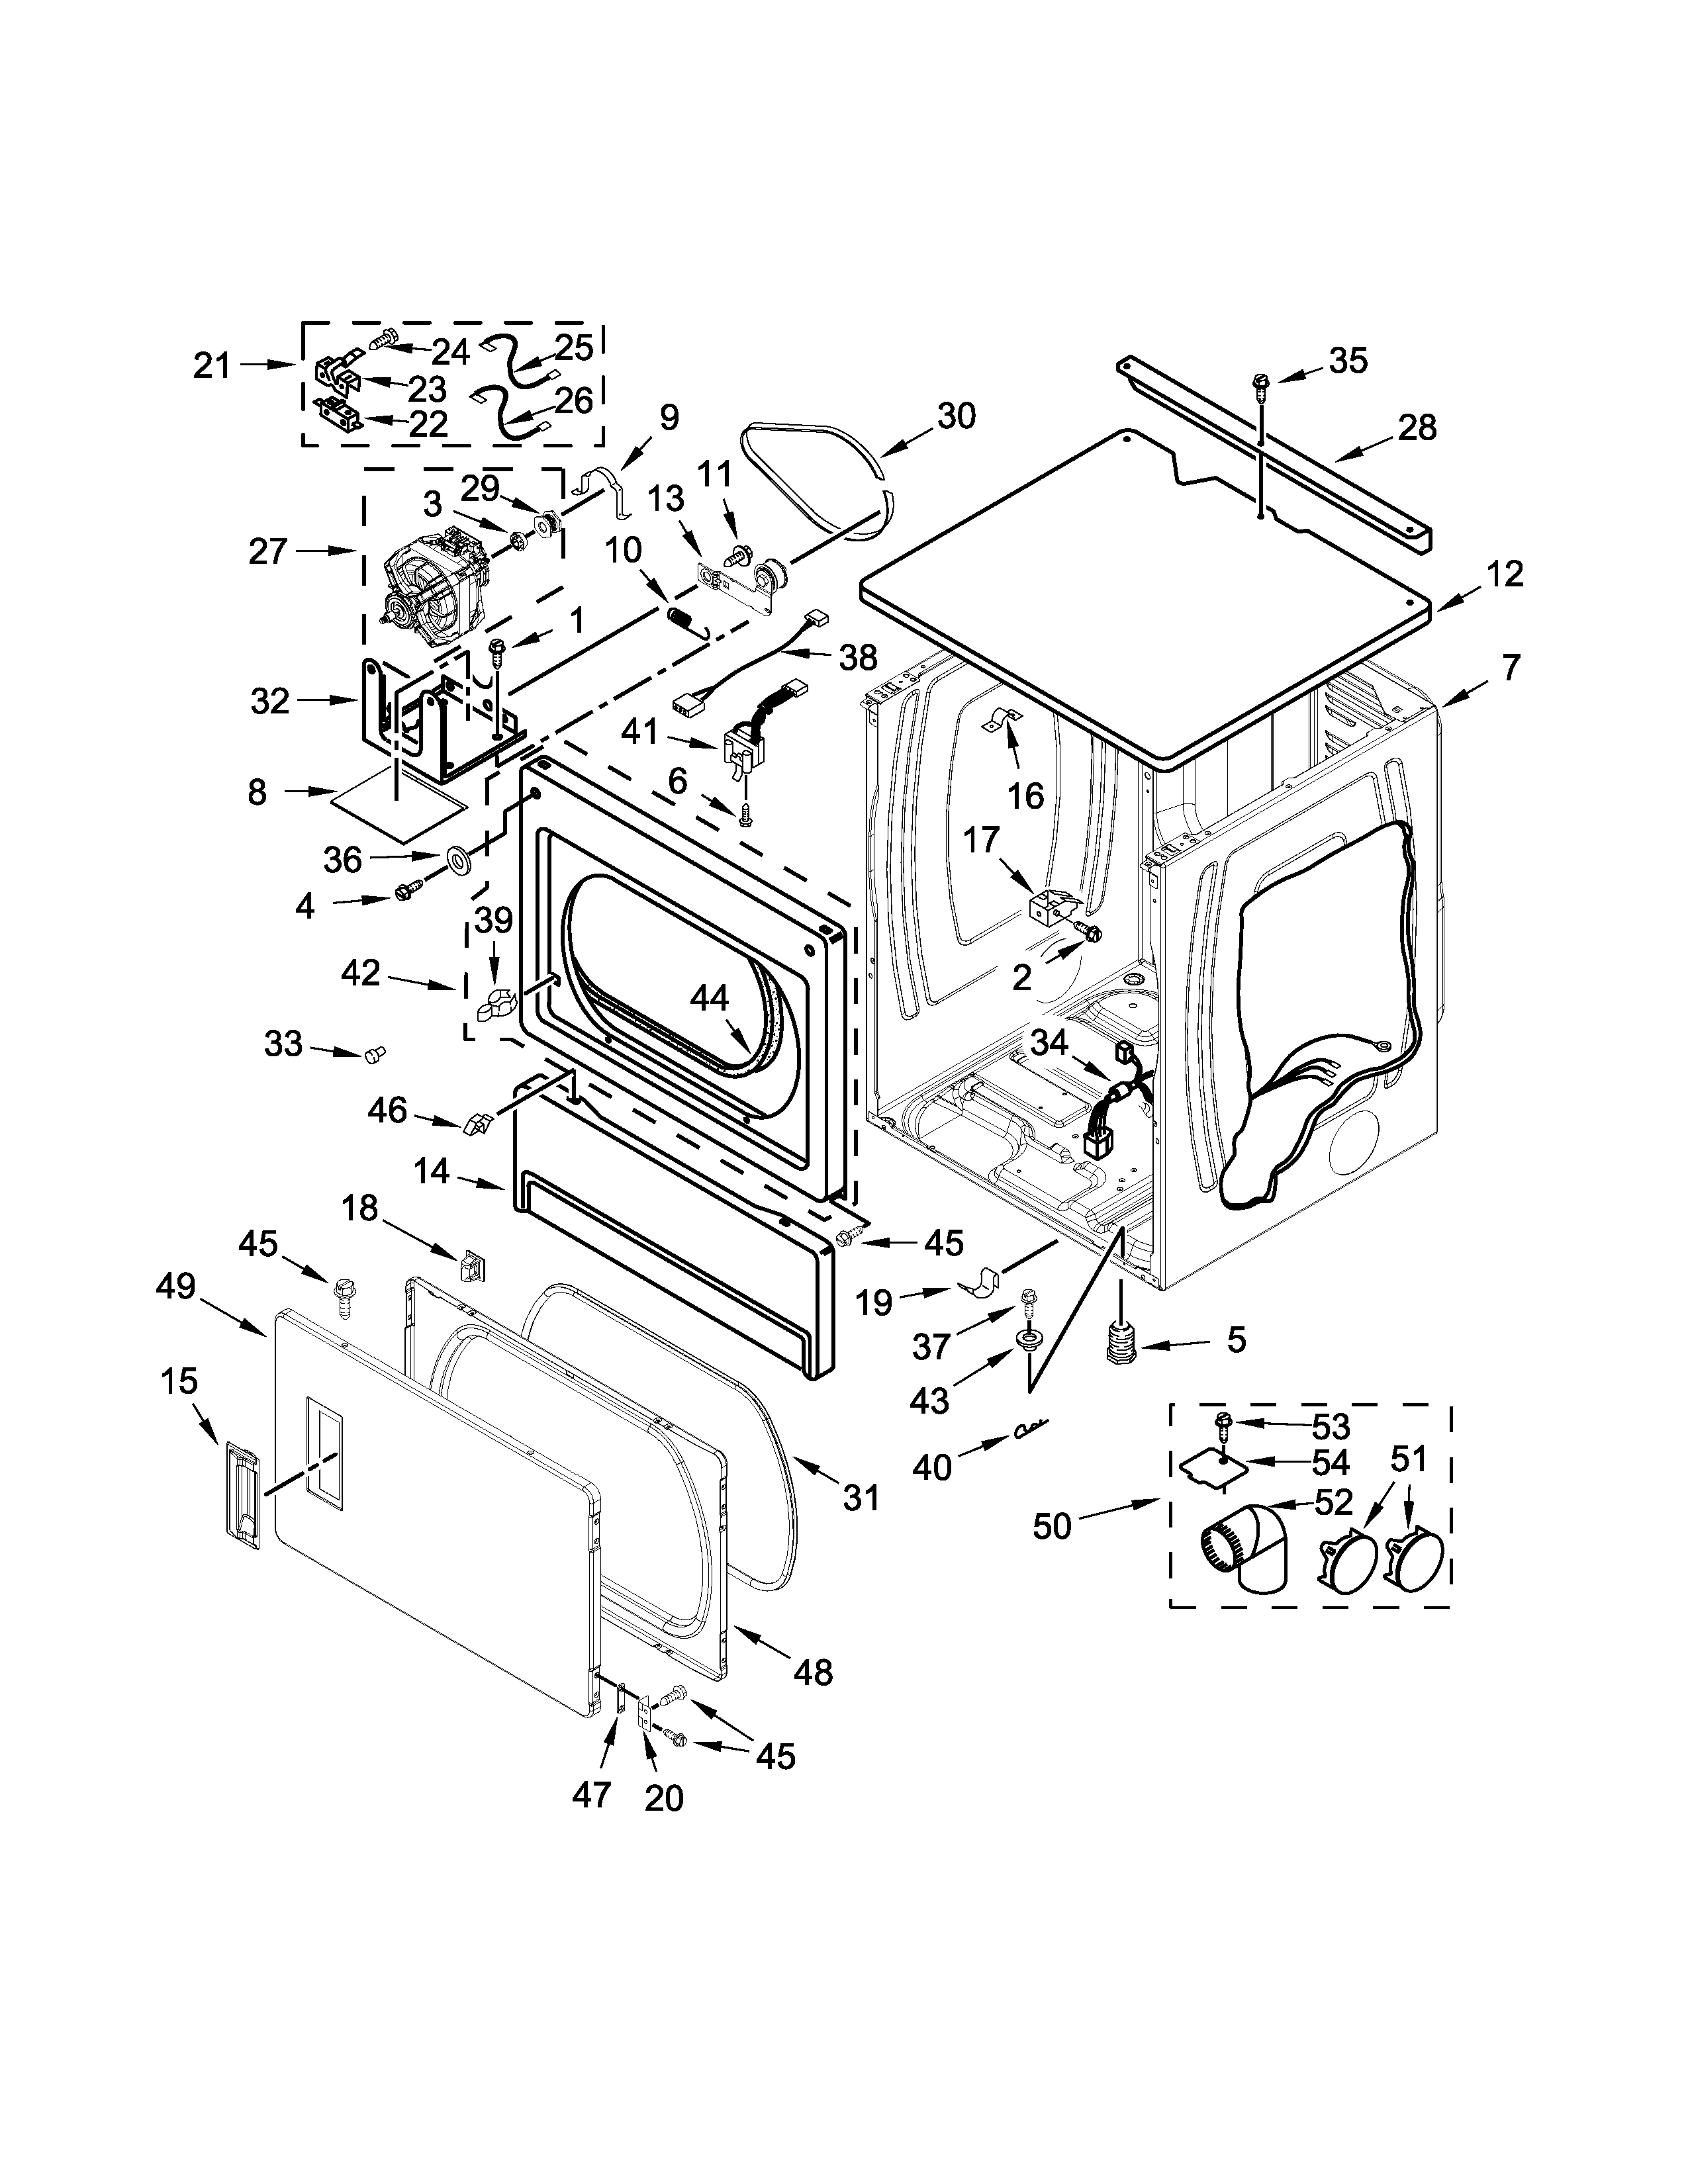 Maytag MLE26PDBZW0 upper cabinet and front panel parts diagram